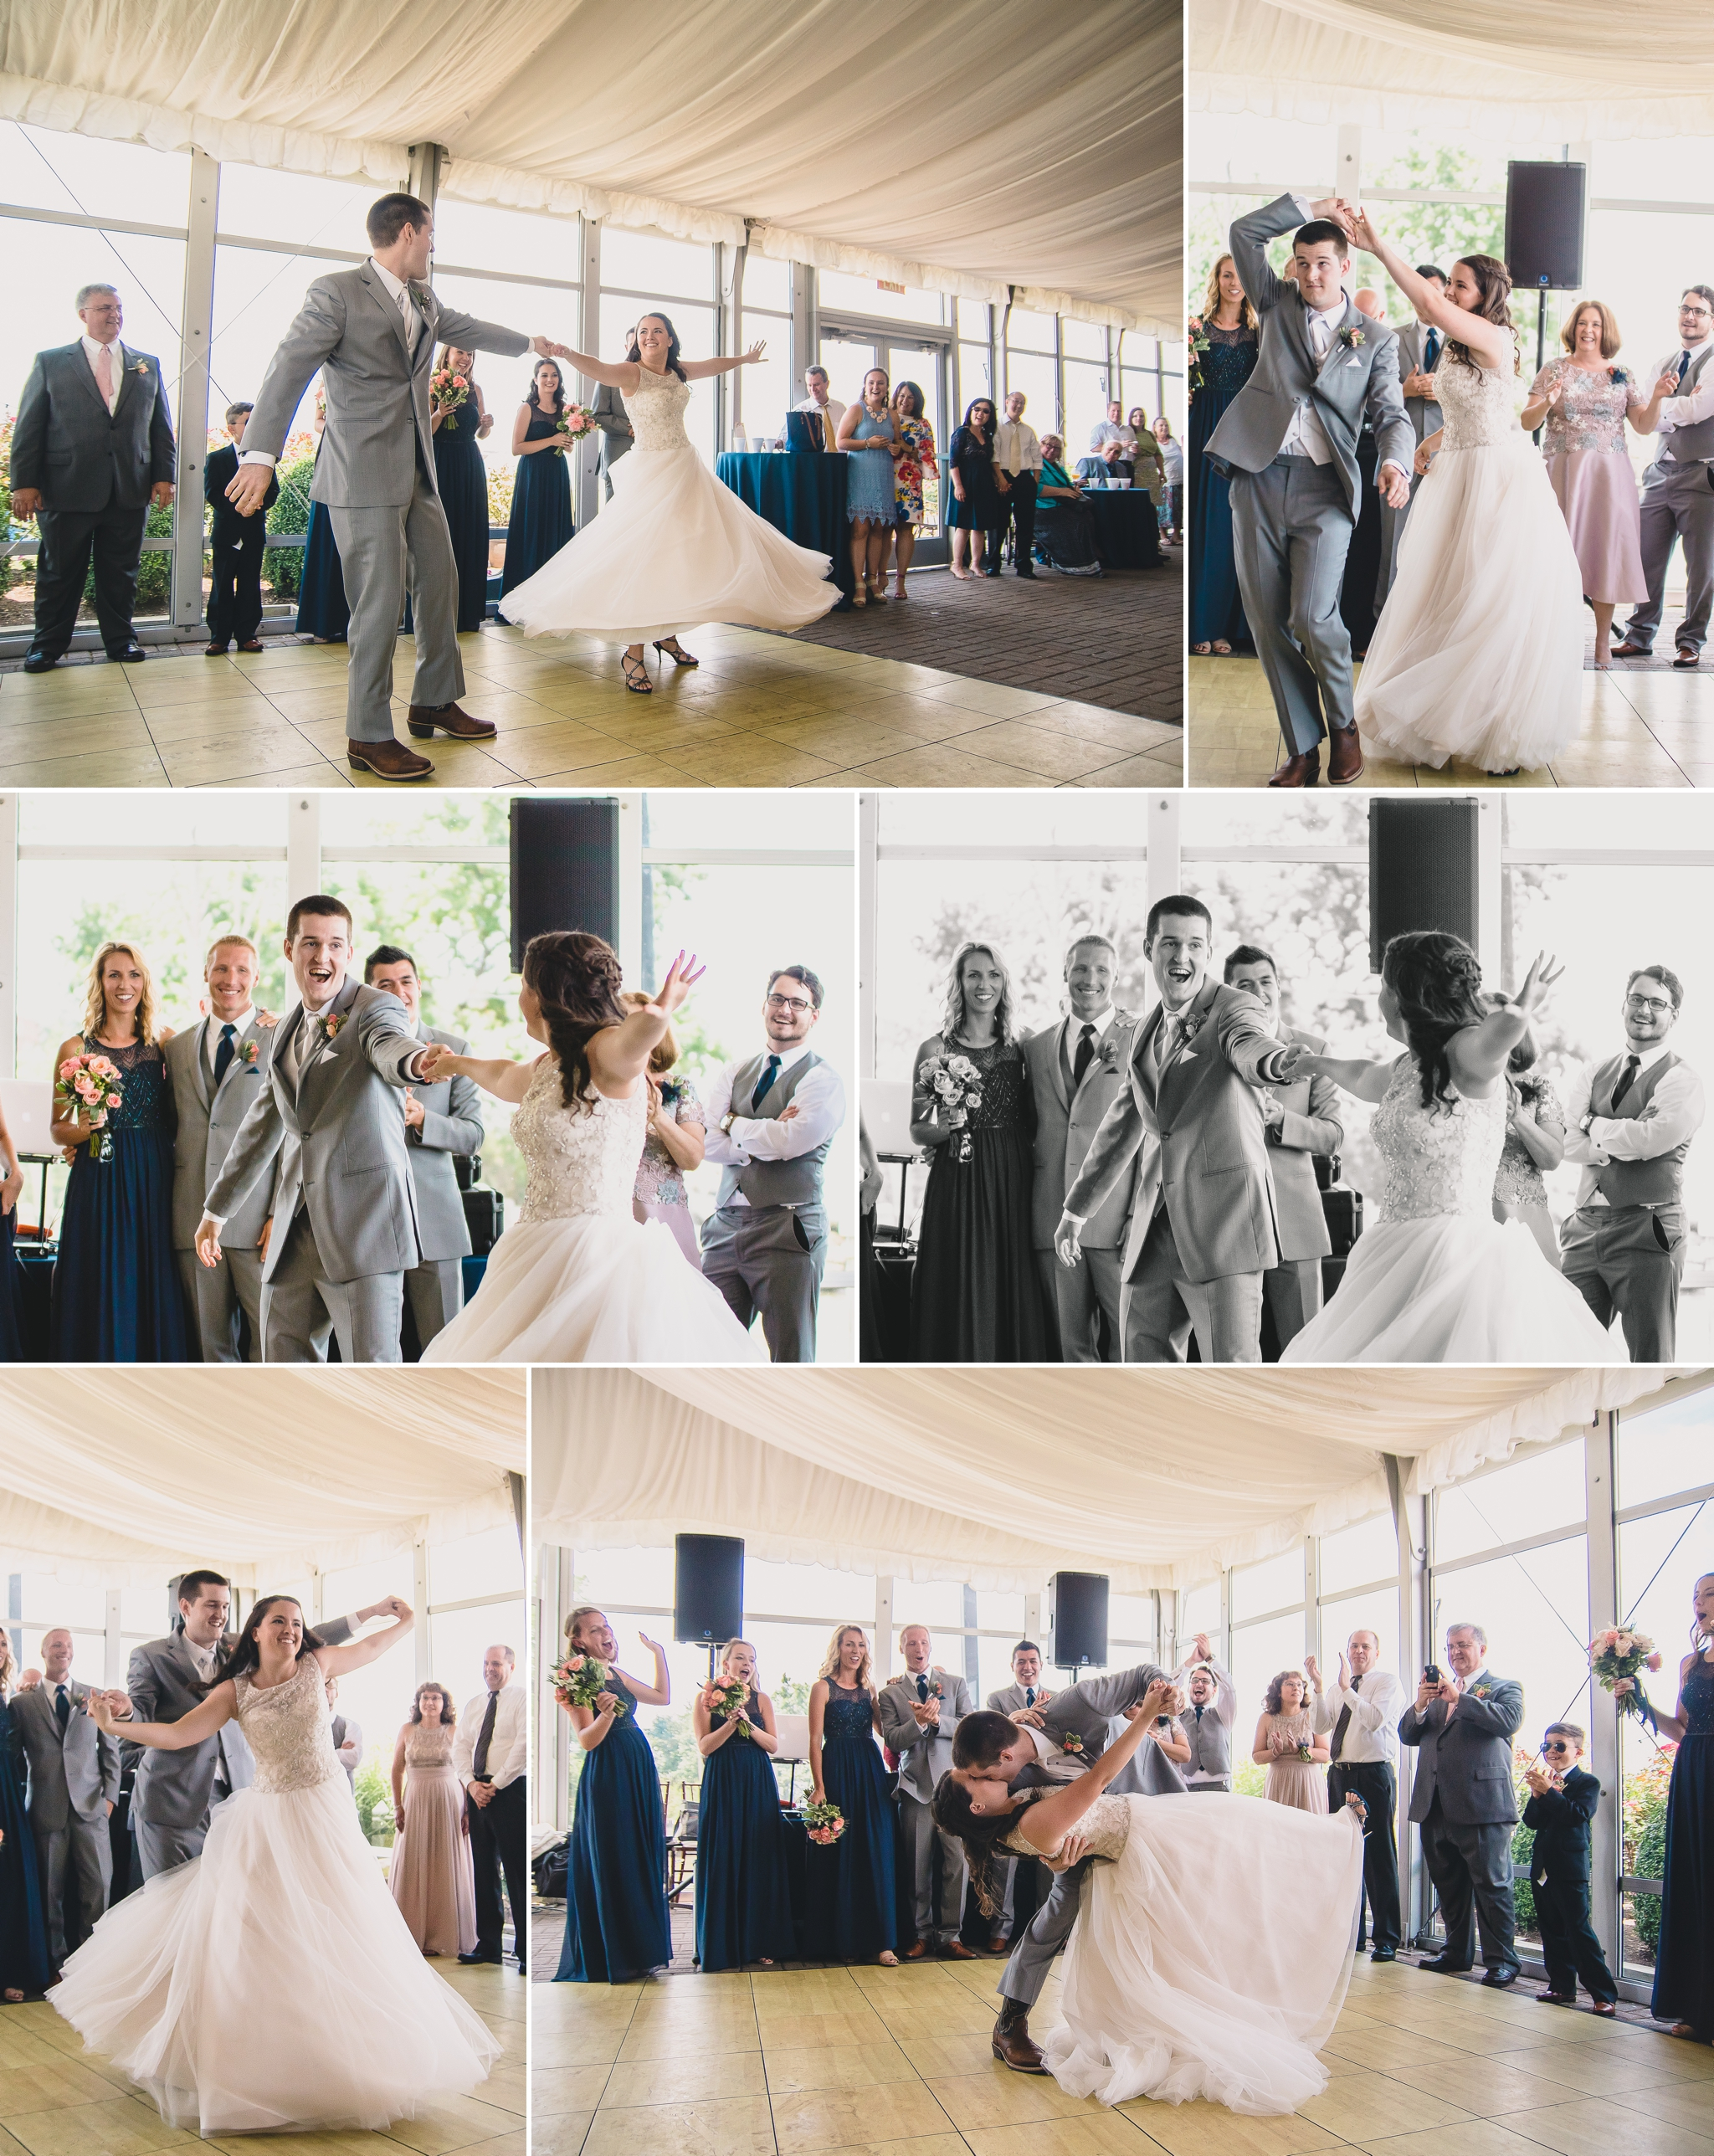 chesapeake bay wedding at silver swan bayside on kent island maryland by jonathan hannah photography